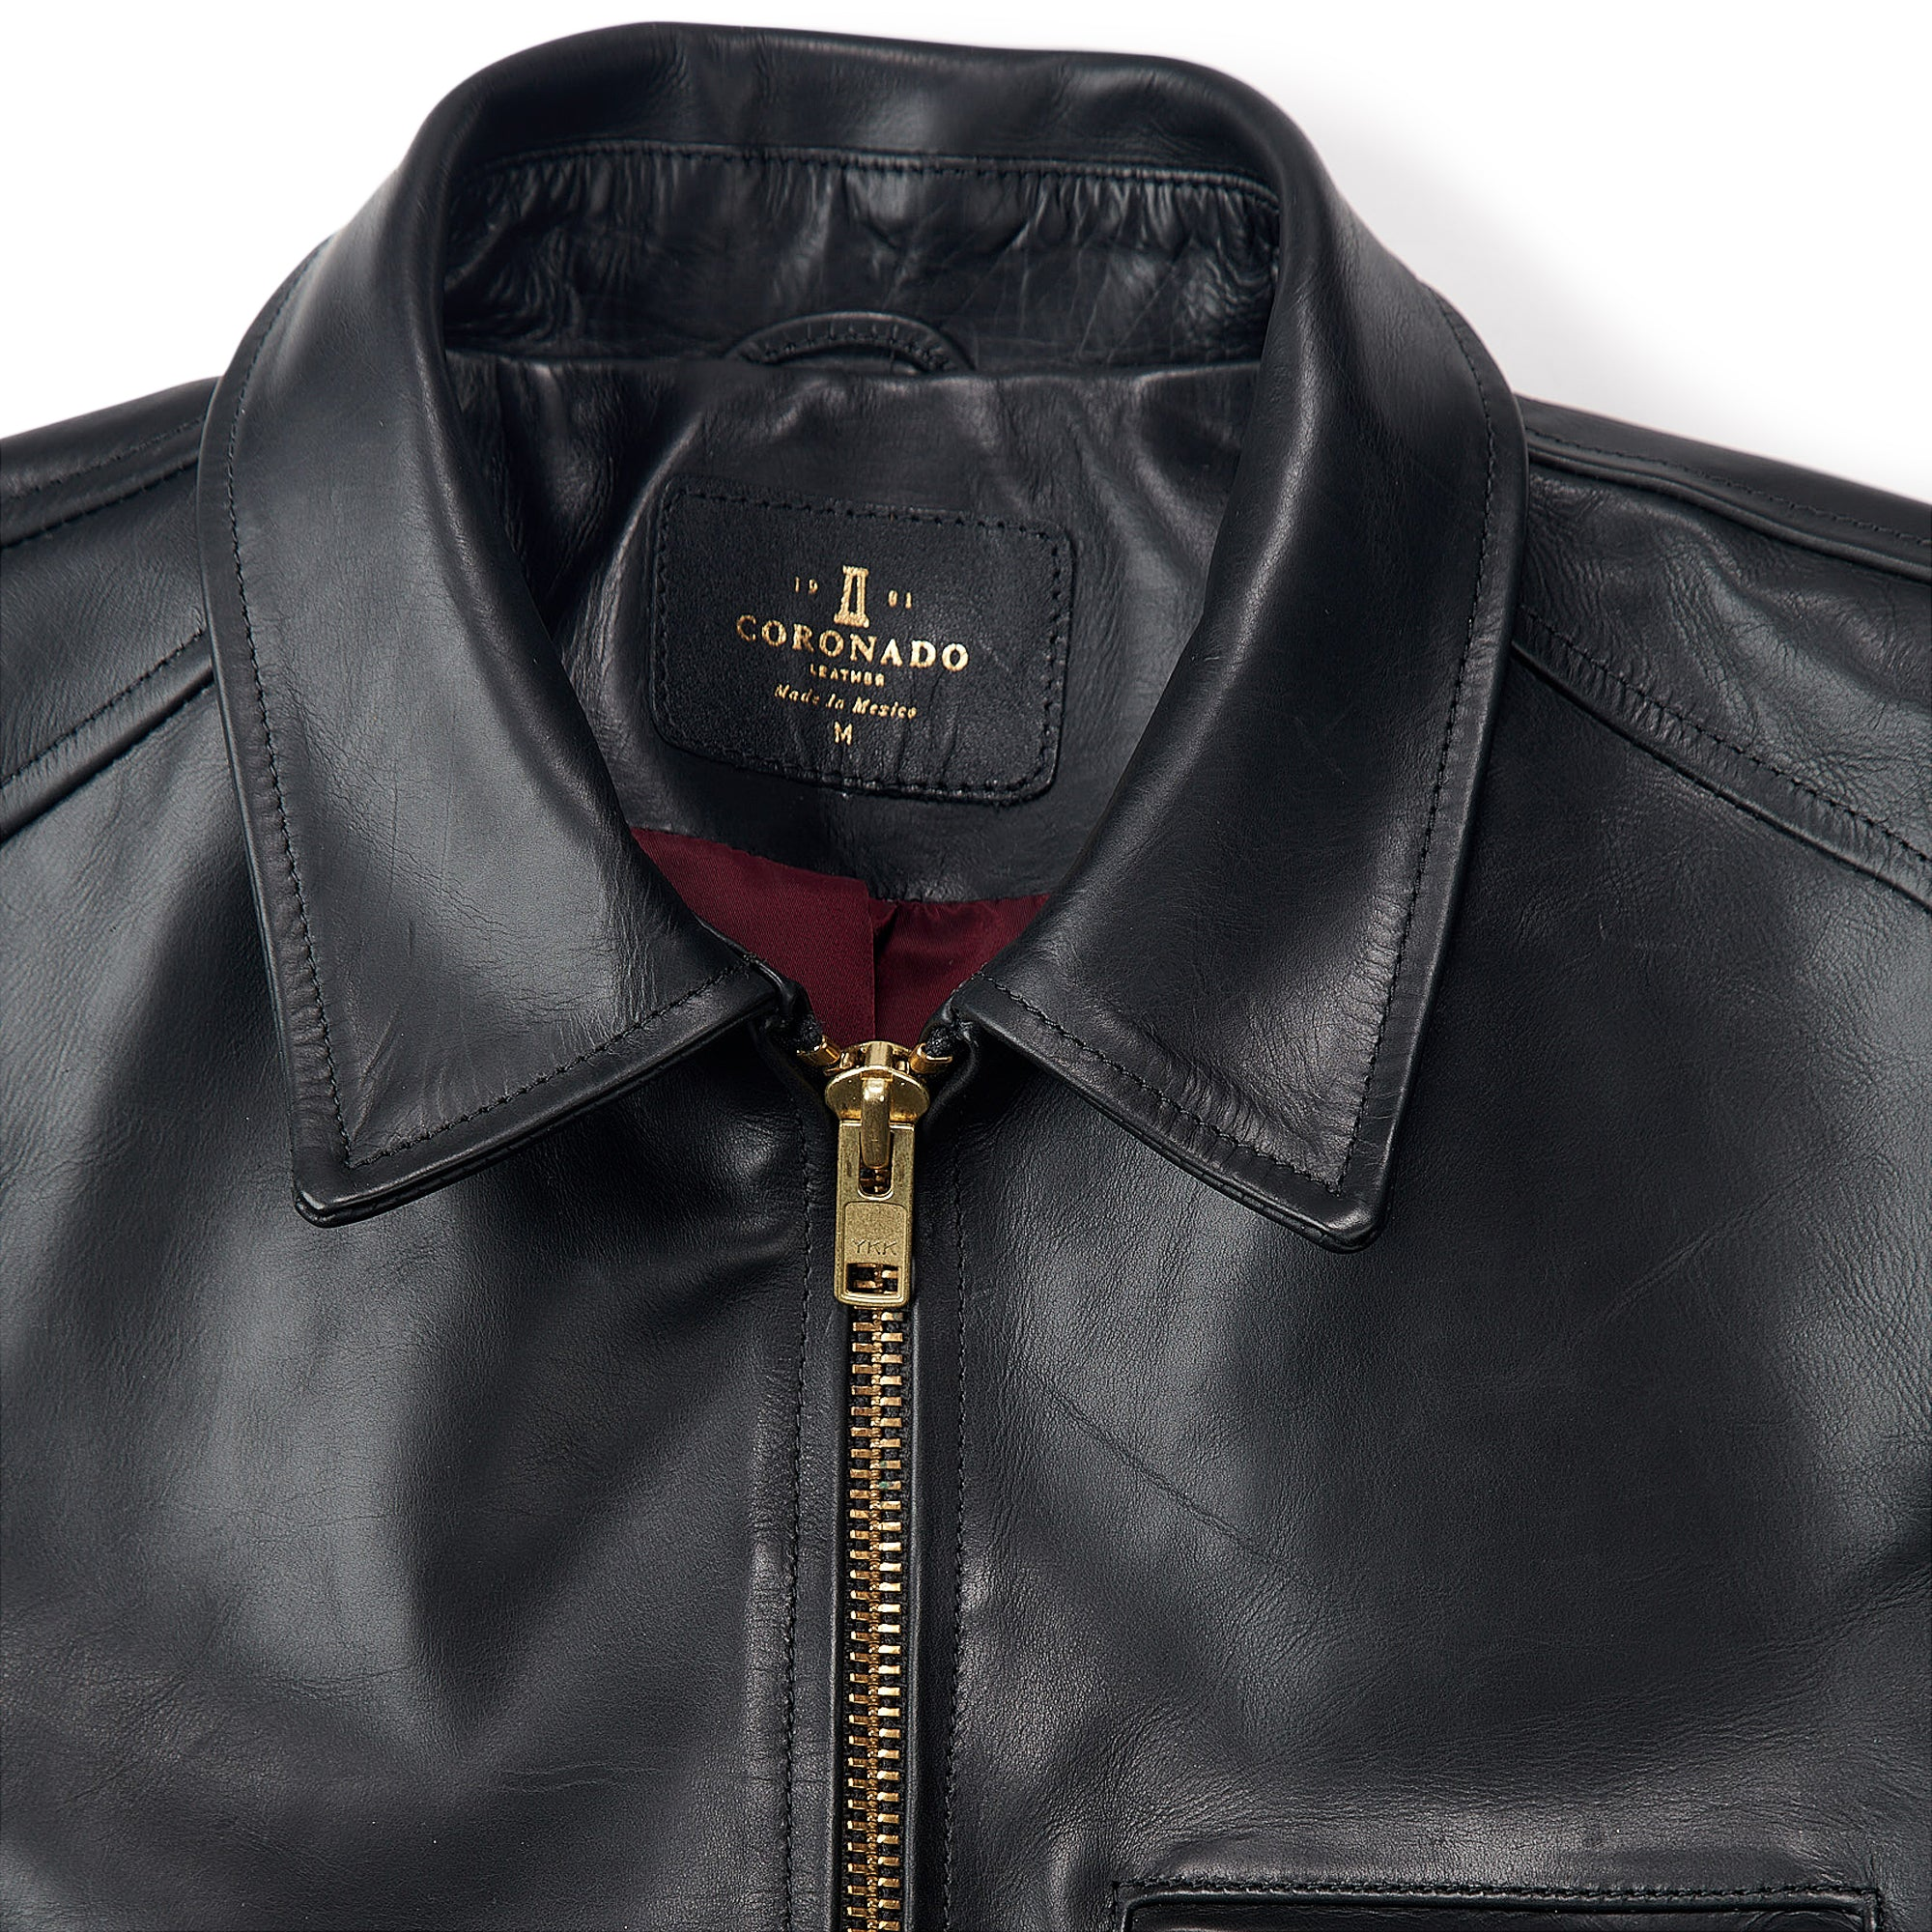 Garrison Jacket No.105 (Limited Edition)